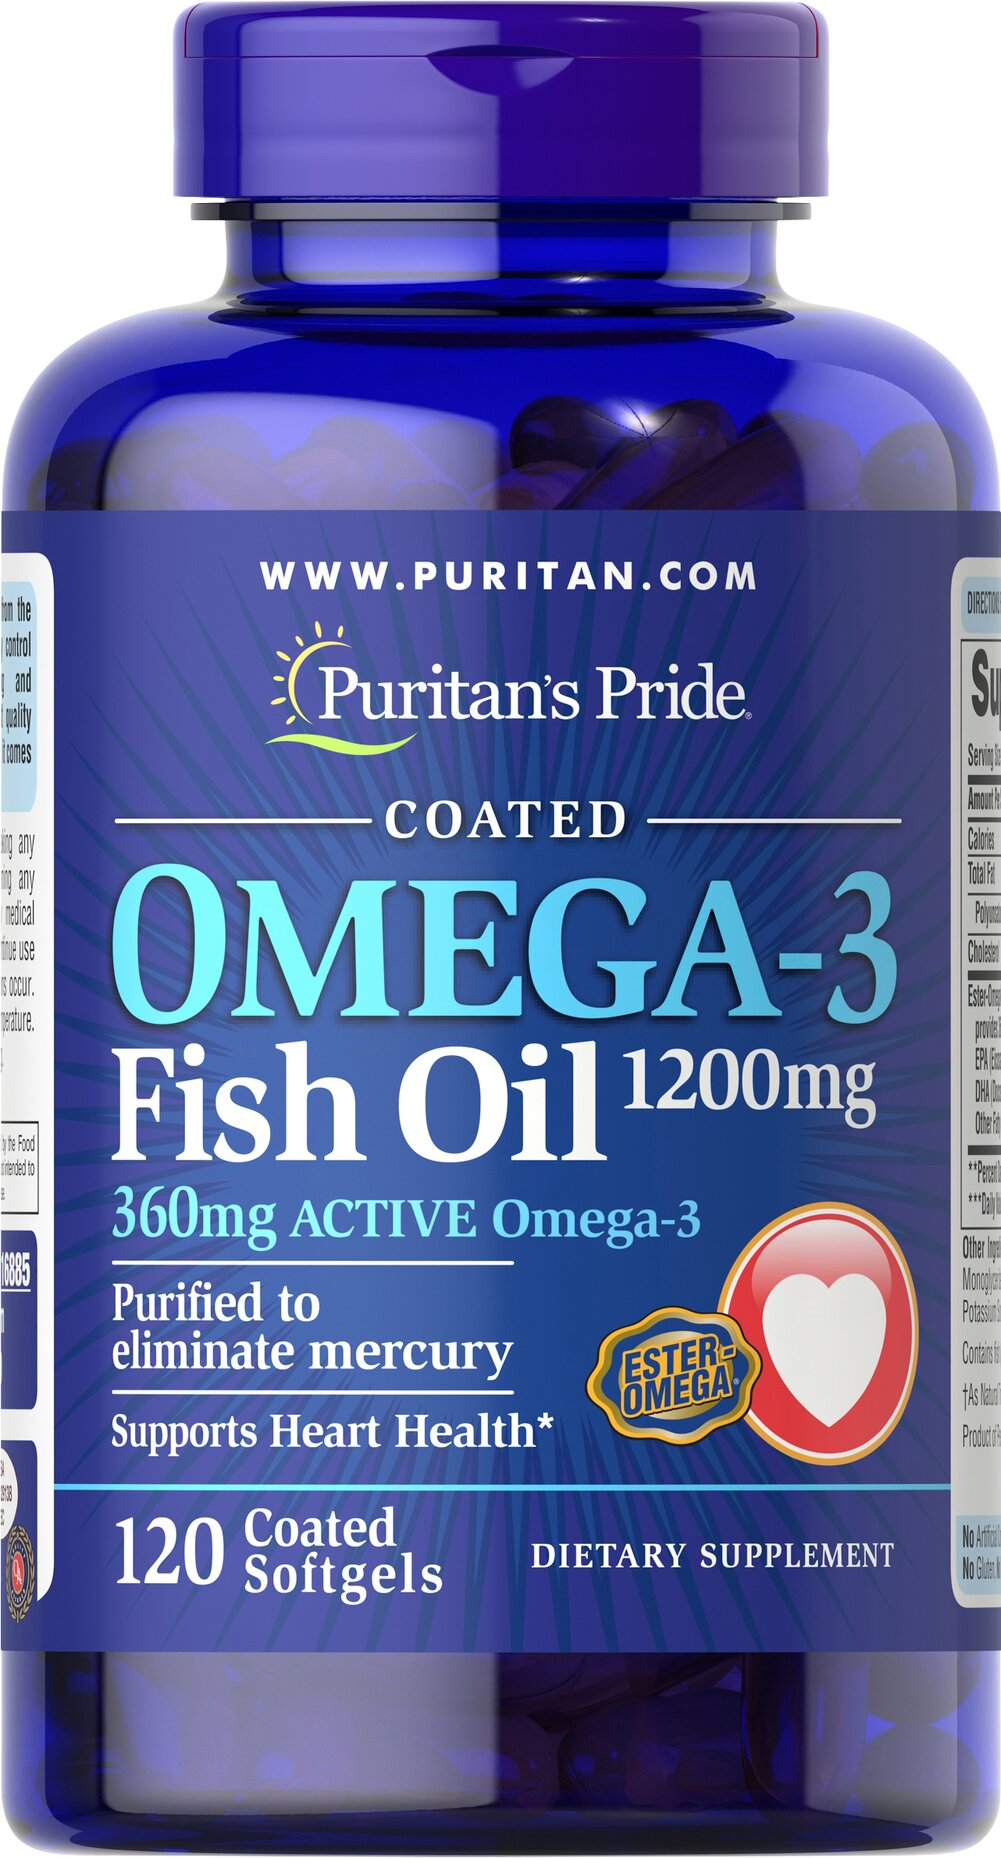 Omega-3 Fish Oil Coated 1200 mg (360 mg Active Omega-3)  120 Coated Softgels 1200 mg $17.99